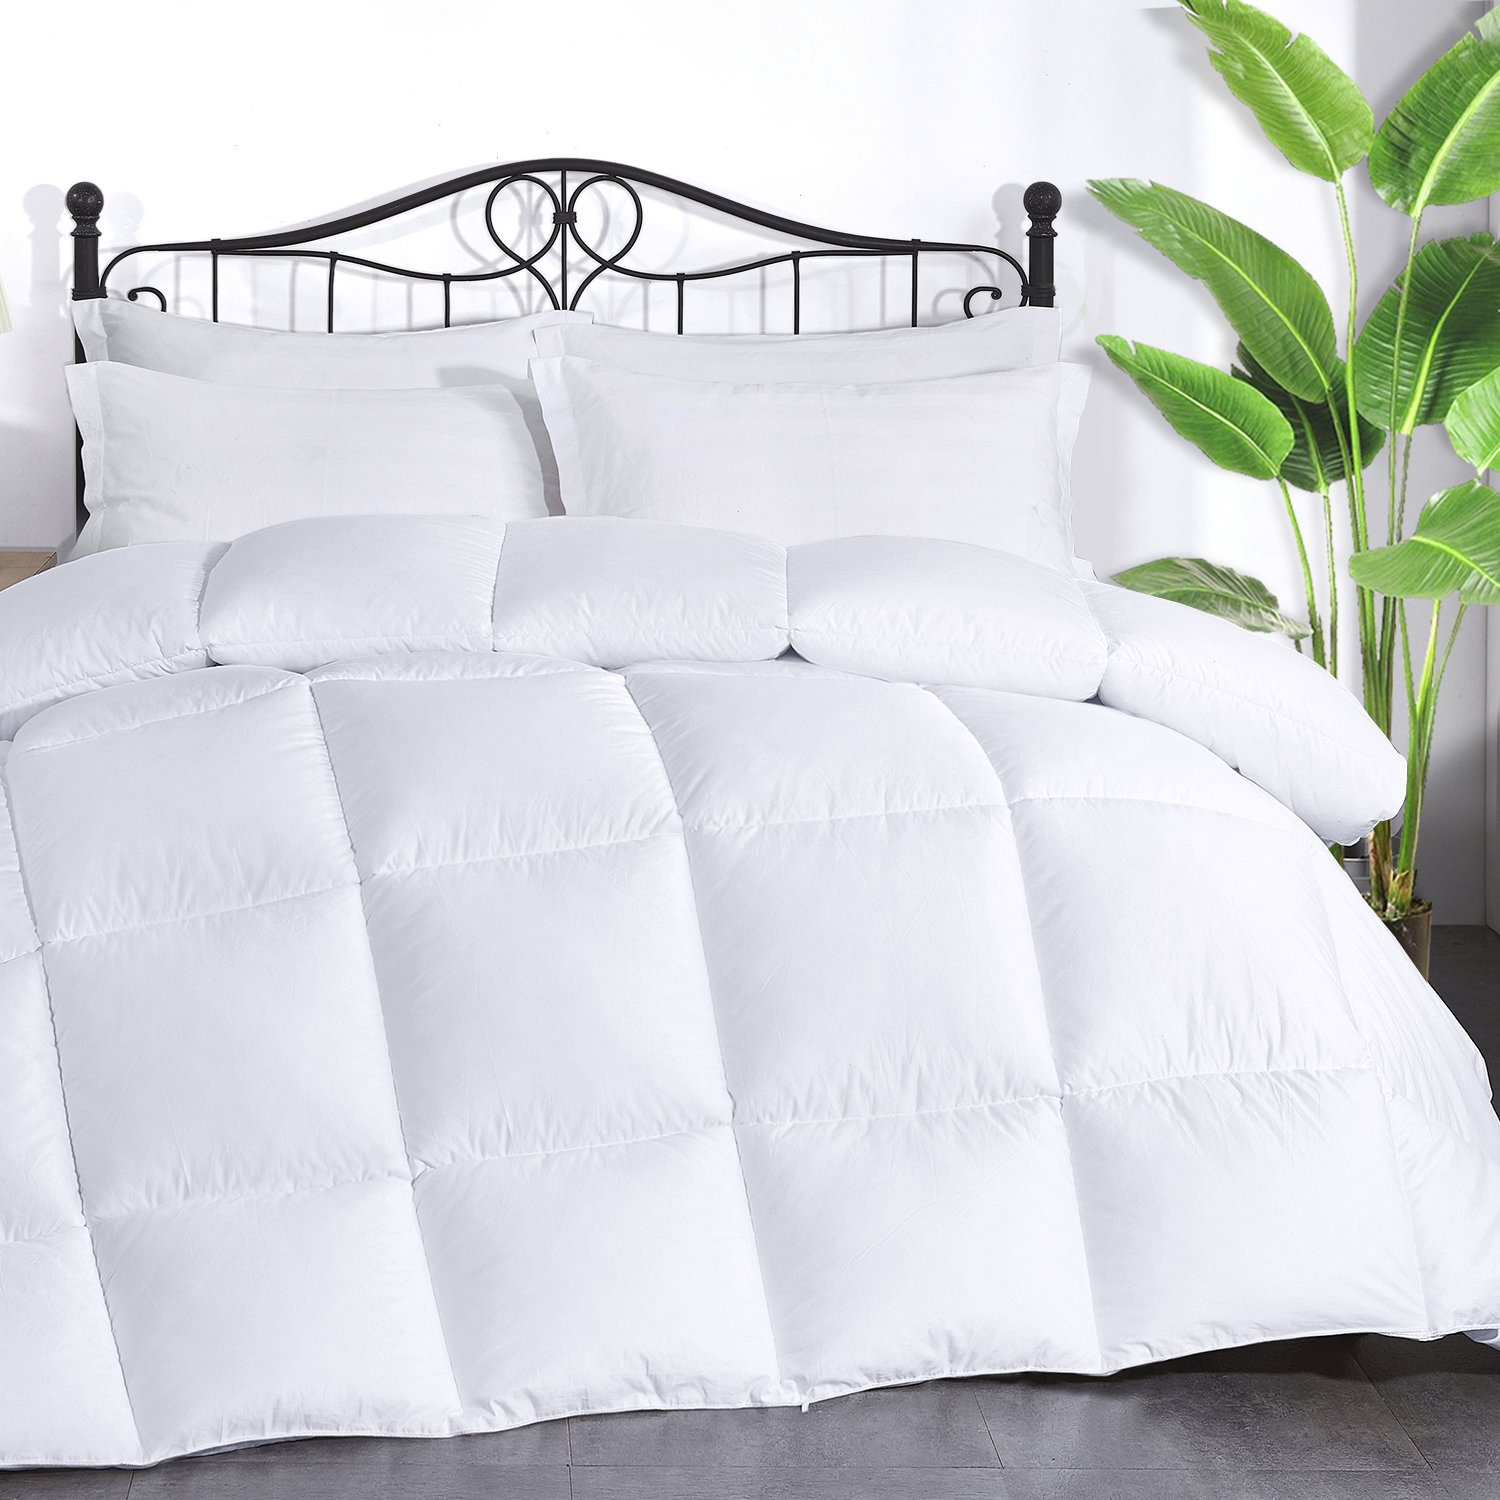 Brermer Soft Queen Goose Down Alternative Comforter, All Seasons Puffy Warm Duvet Insert with 8 Corner Tabs, Luxury Reversible Hotel Collection, 90''x 90'', White